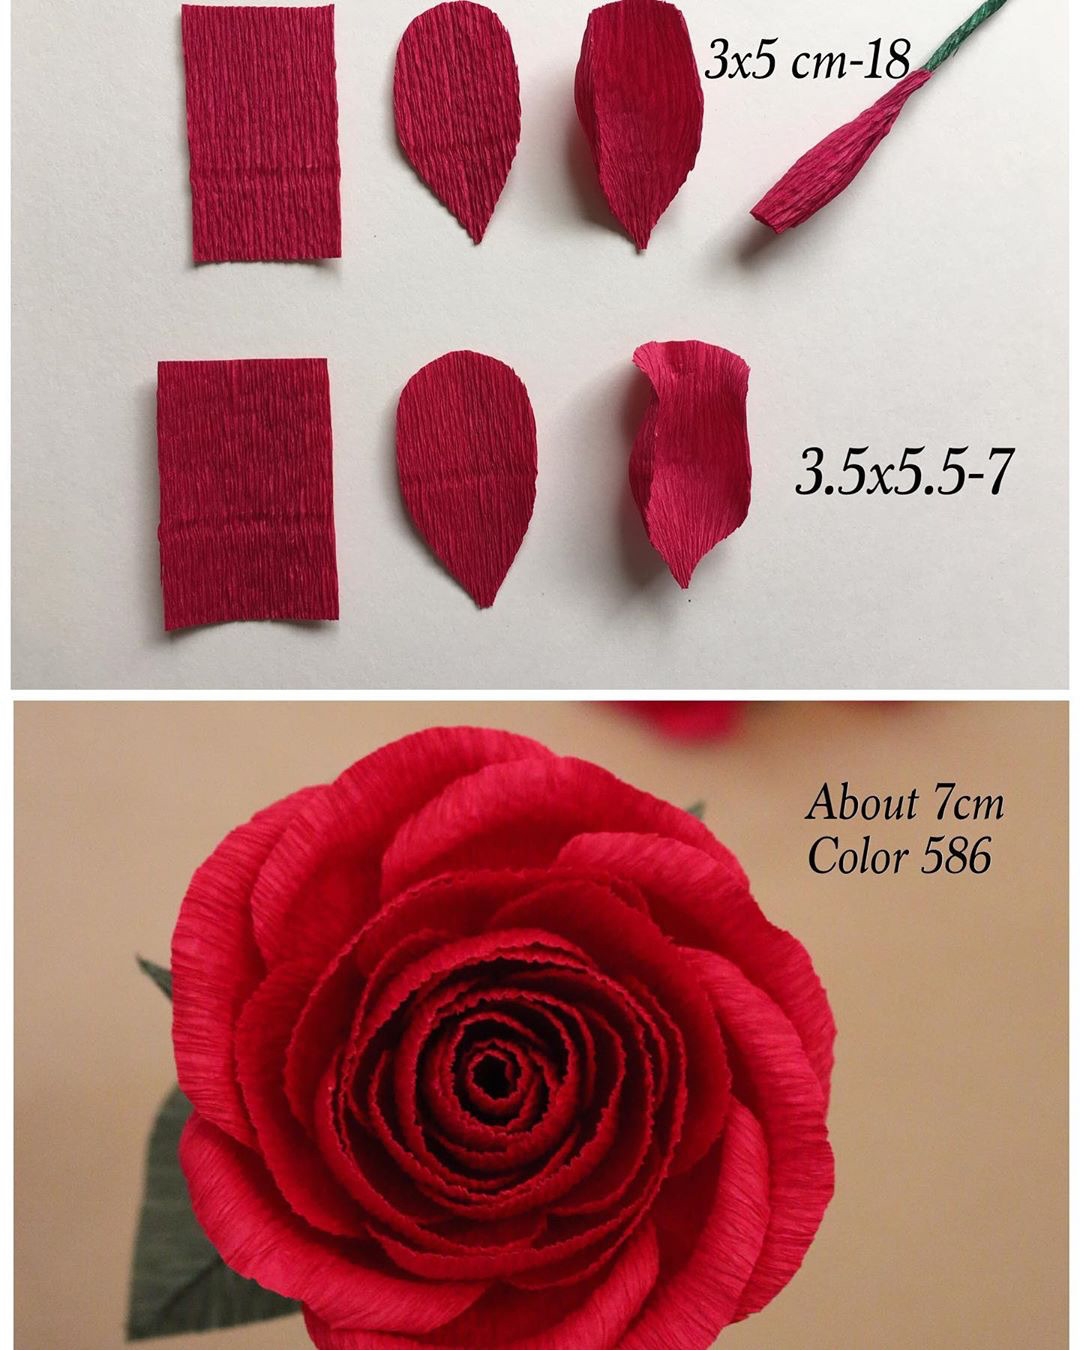 Crepe Paper Roses Are Just One Of Our Favorite Flower Color 586